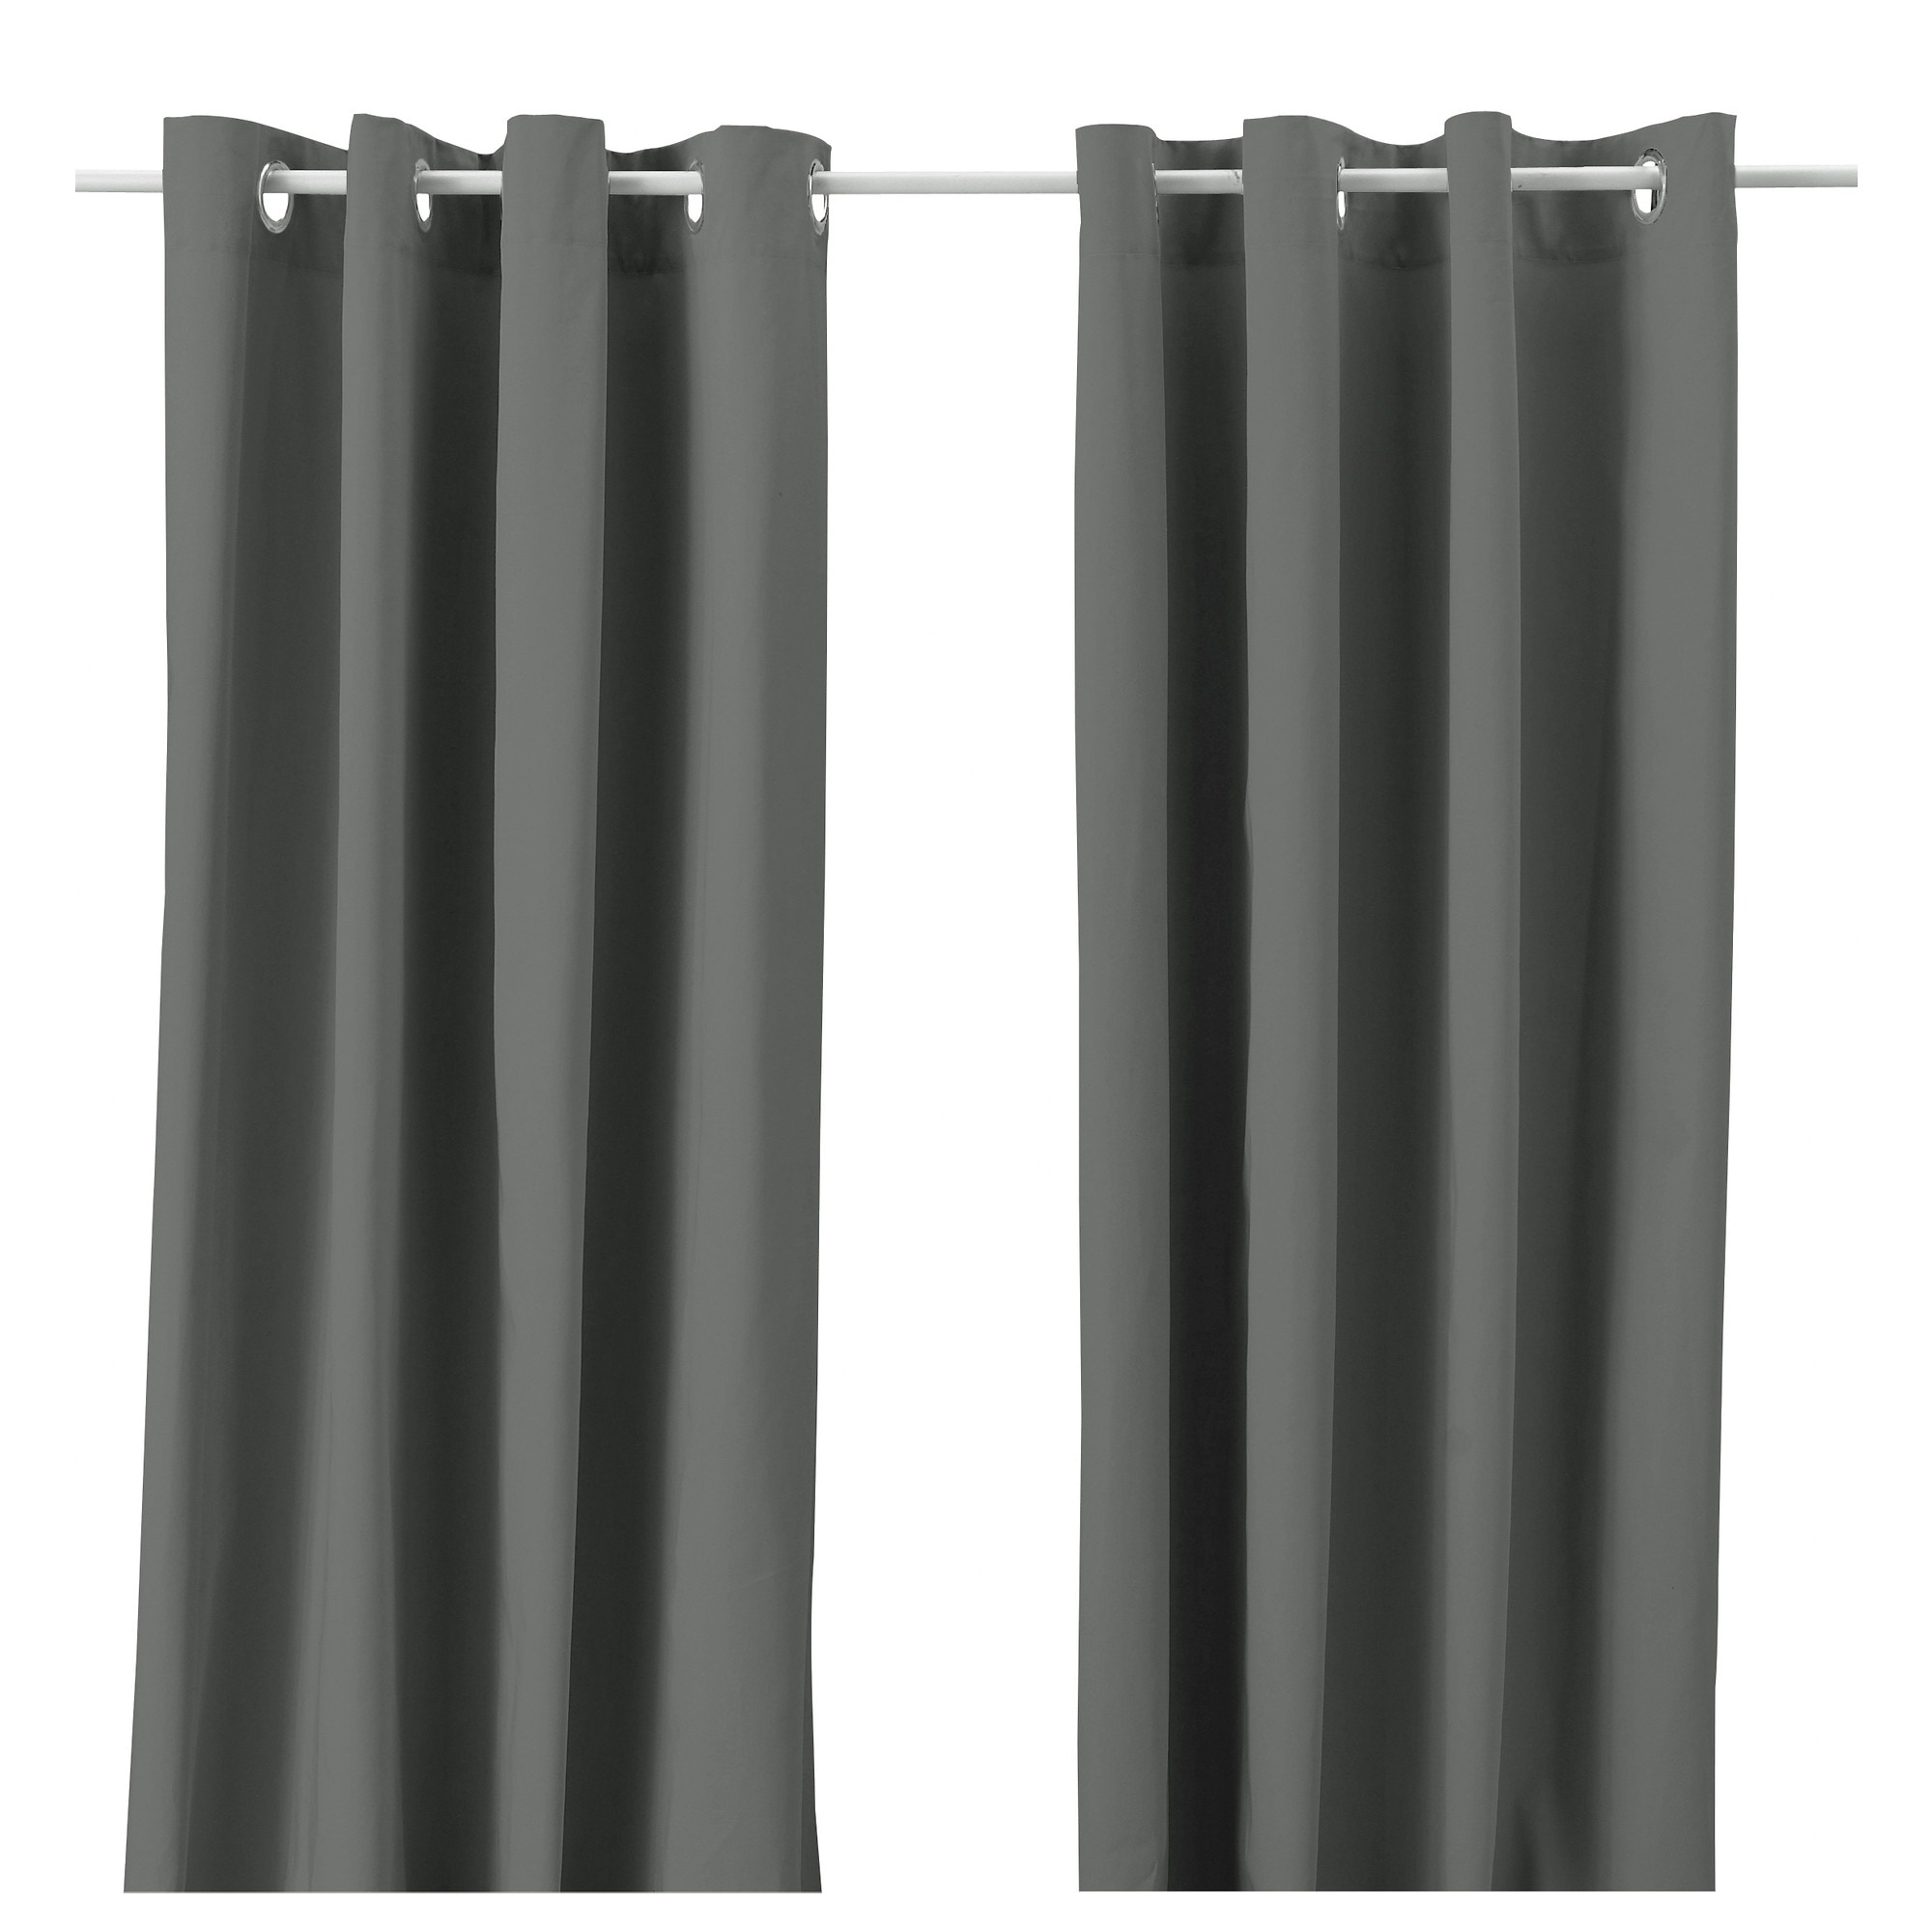 Grey curtains living room - Merete Curtains 1 Pair Gray Length 98 Width 57 Weight